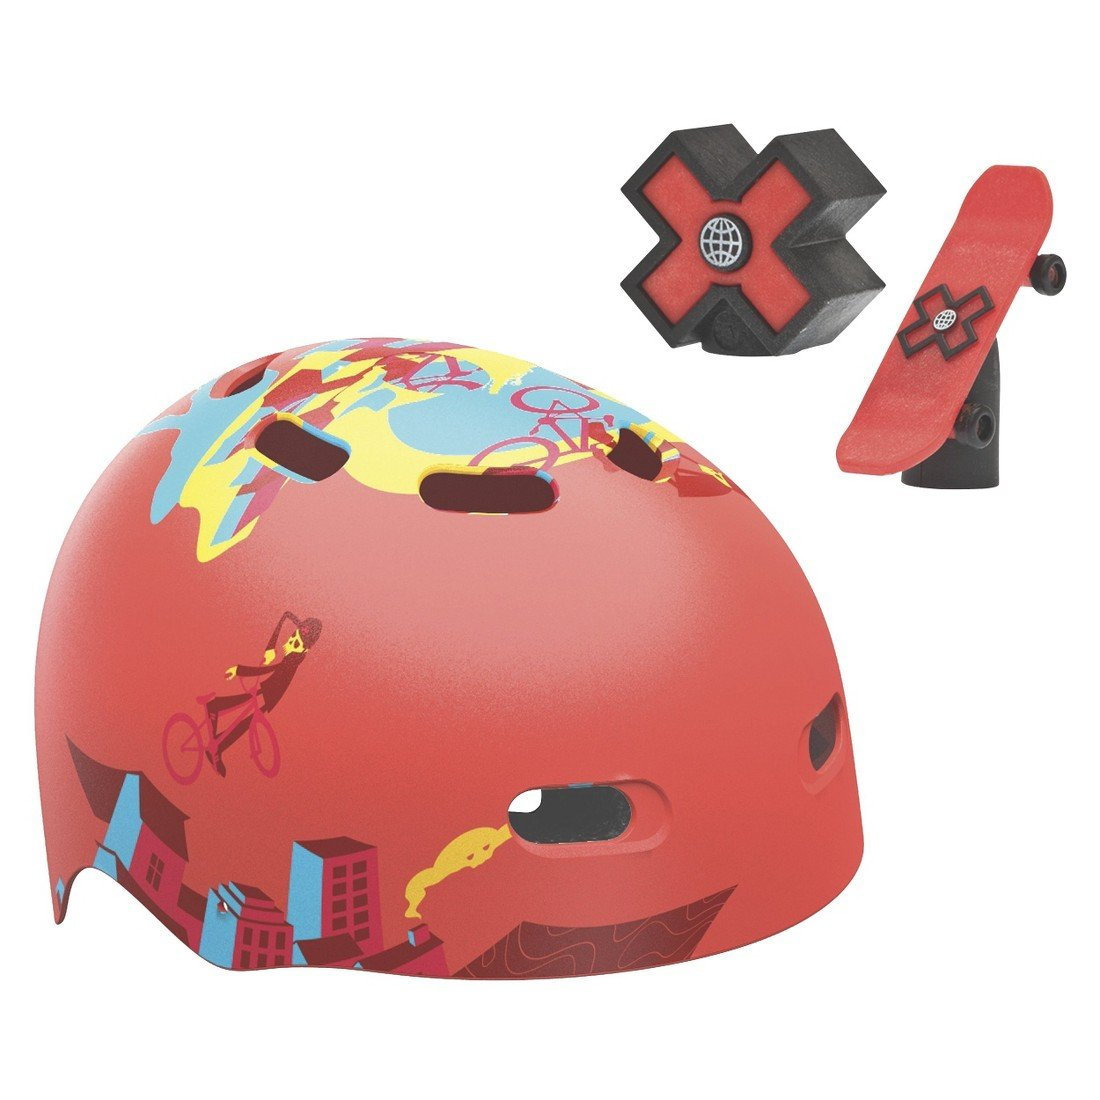 Bell XGames Recon Child Multi-Sport Helmet with Valve Caps